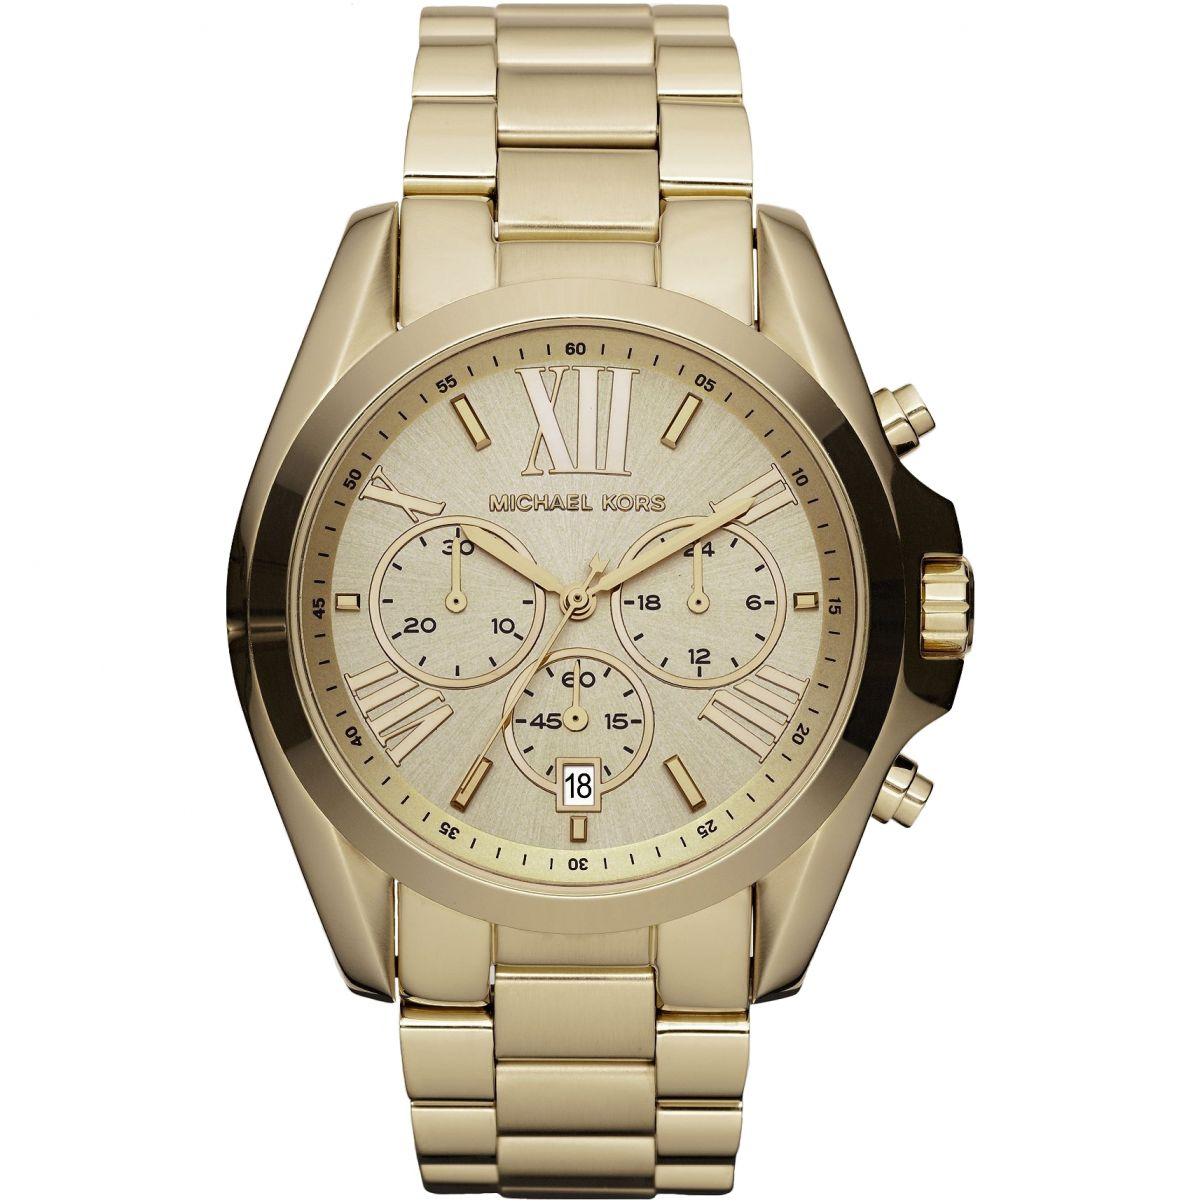 Ladies Michael Kors Bradshaw Chronograph Watch MK WatchShopcom - Graphic design invoice template word michael kors outlet online store